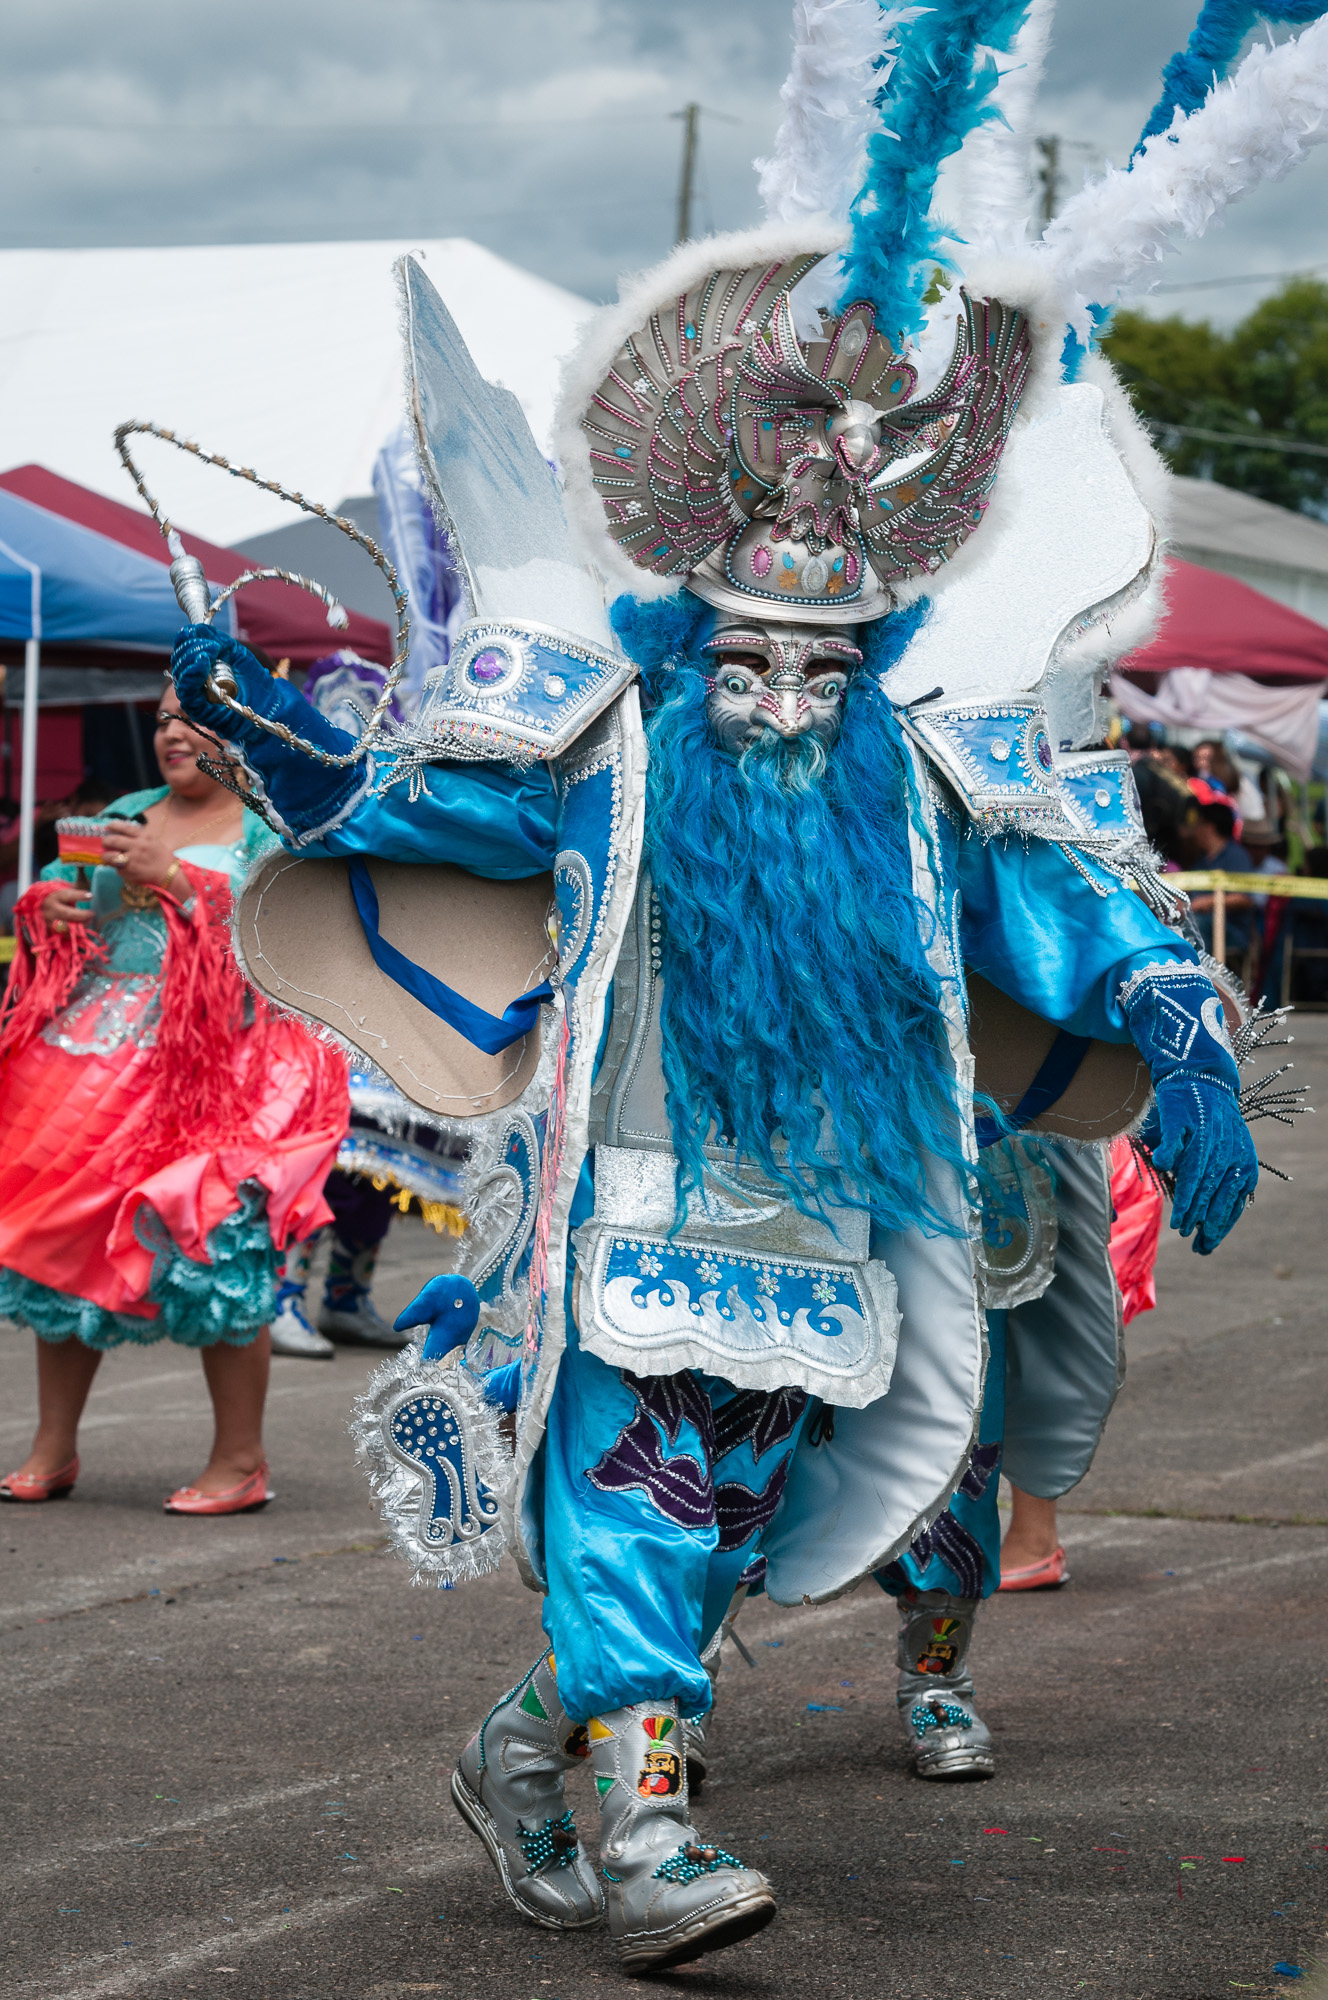 Some performers had full costumes, from head to toe, such as this member of Morenada Transpeco USA performing a Morenada dance.